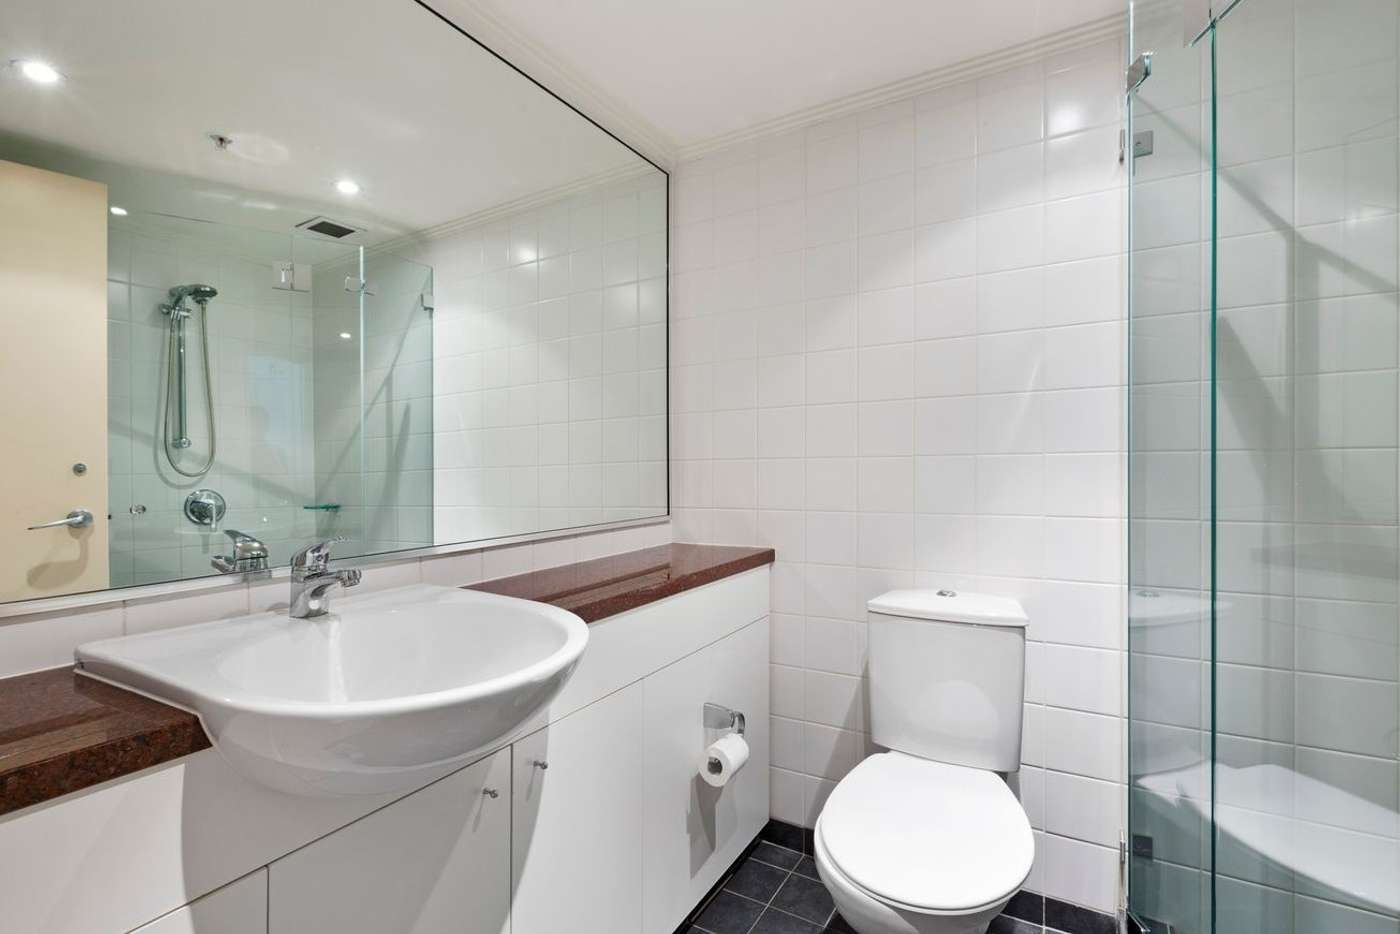 Fifth view of Homely apartment listing, 1006/1 Sergeants Lane, St Leonards NSW 2065